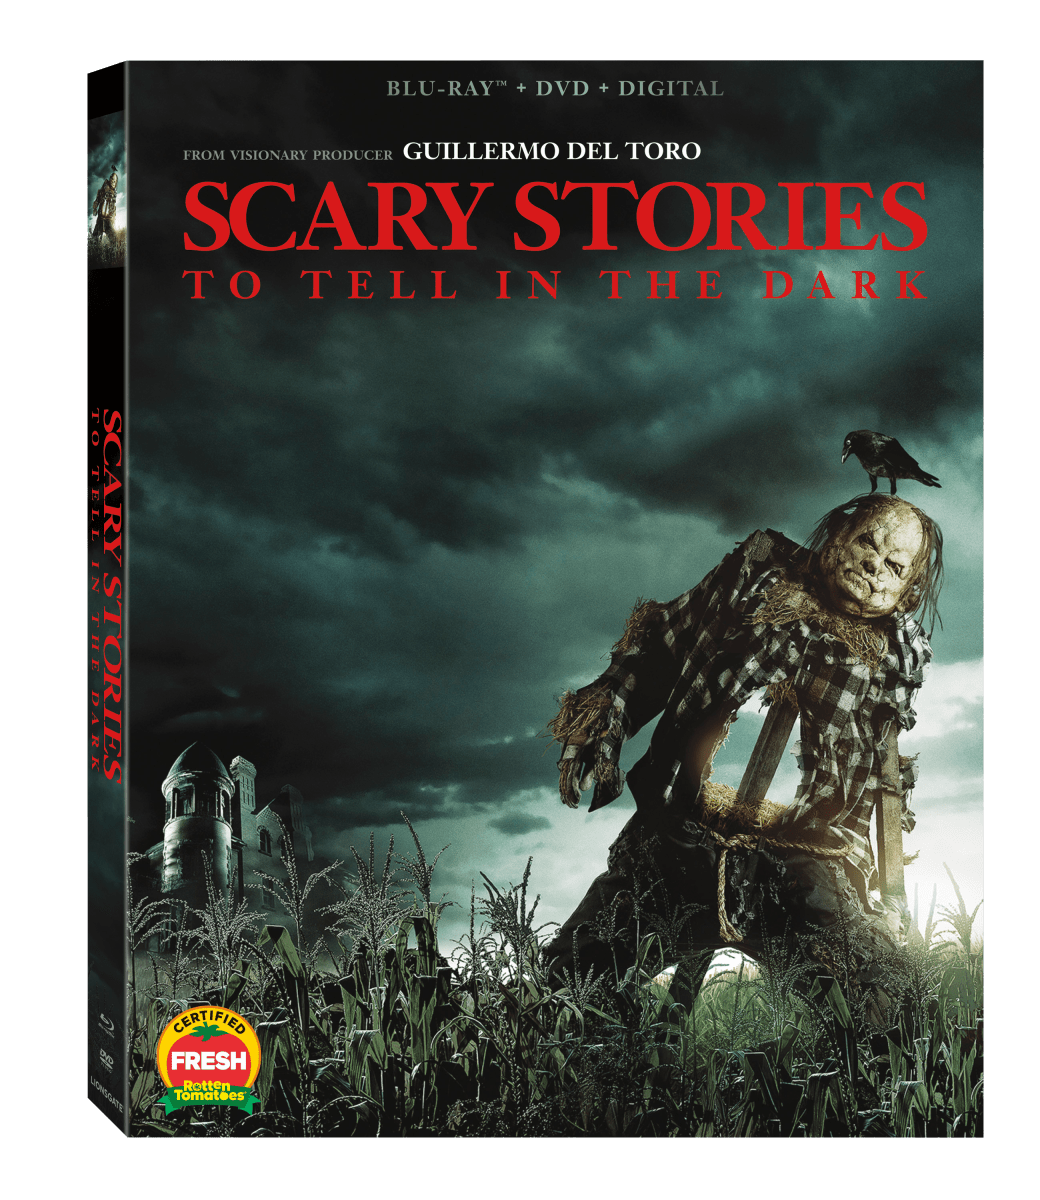 Scary Stories to Tell in the Dark Blu-Ray + DVD + Digital